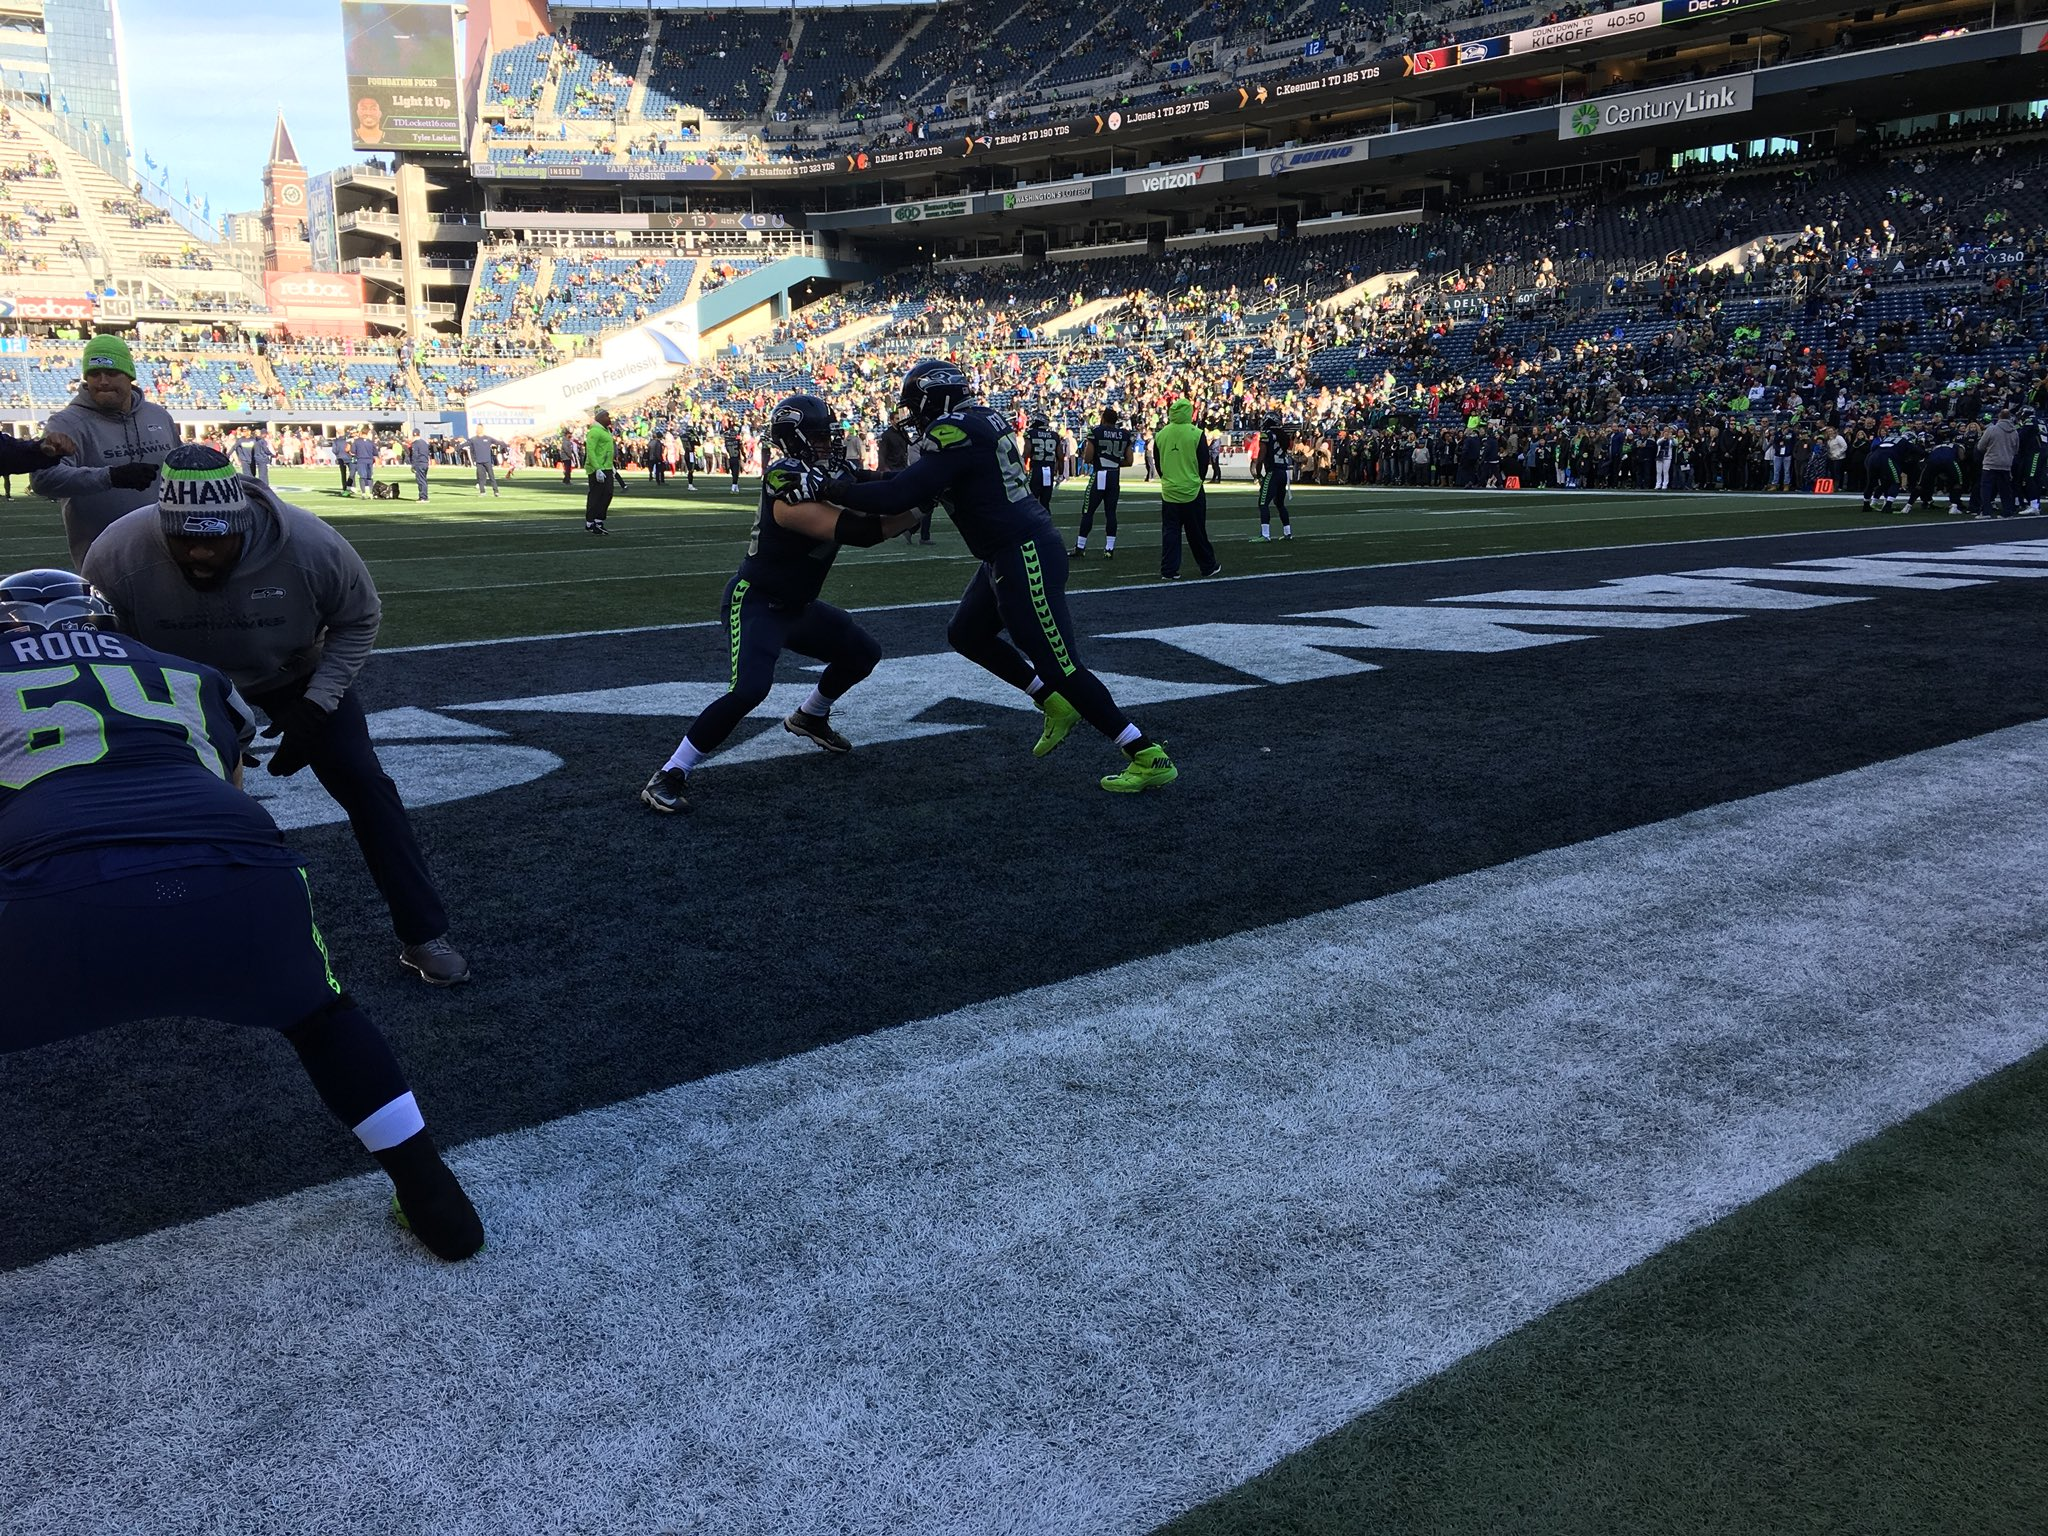 The Seattle Seahawks play the Arizona Cardinals at CenturyLink Field in Seattle for their last game of the regular season. (Photo: KOMO News)